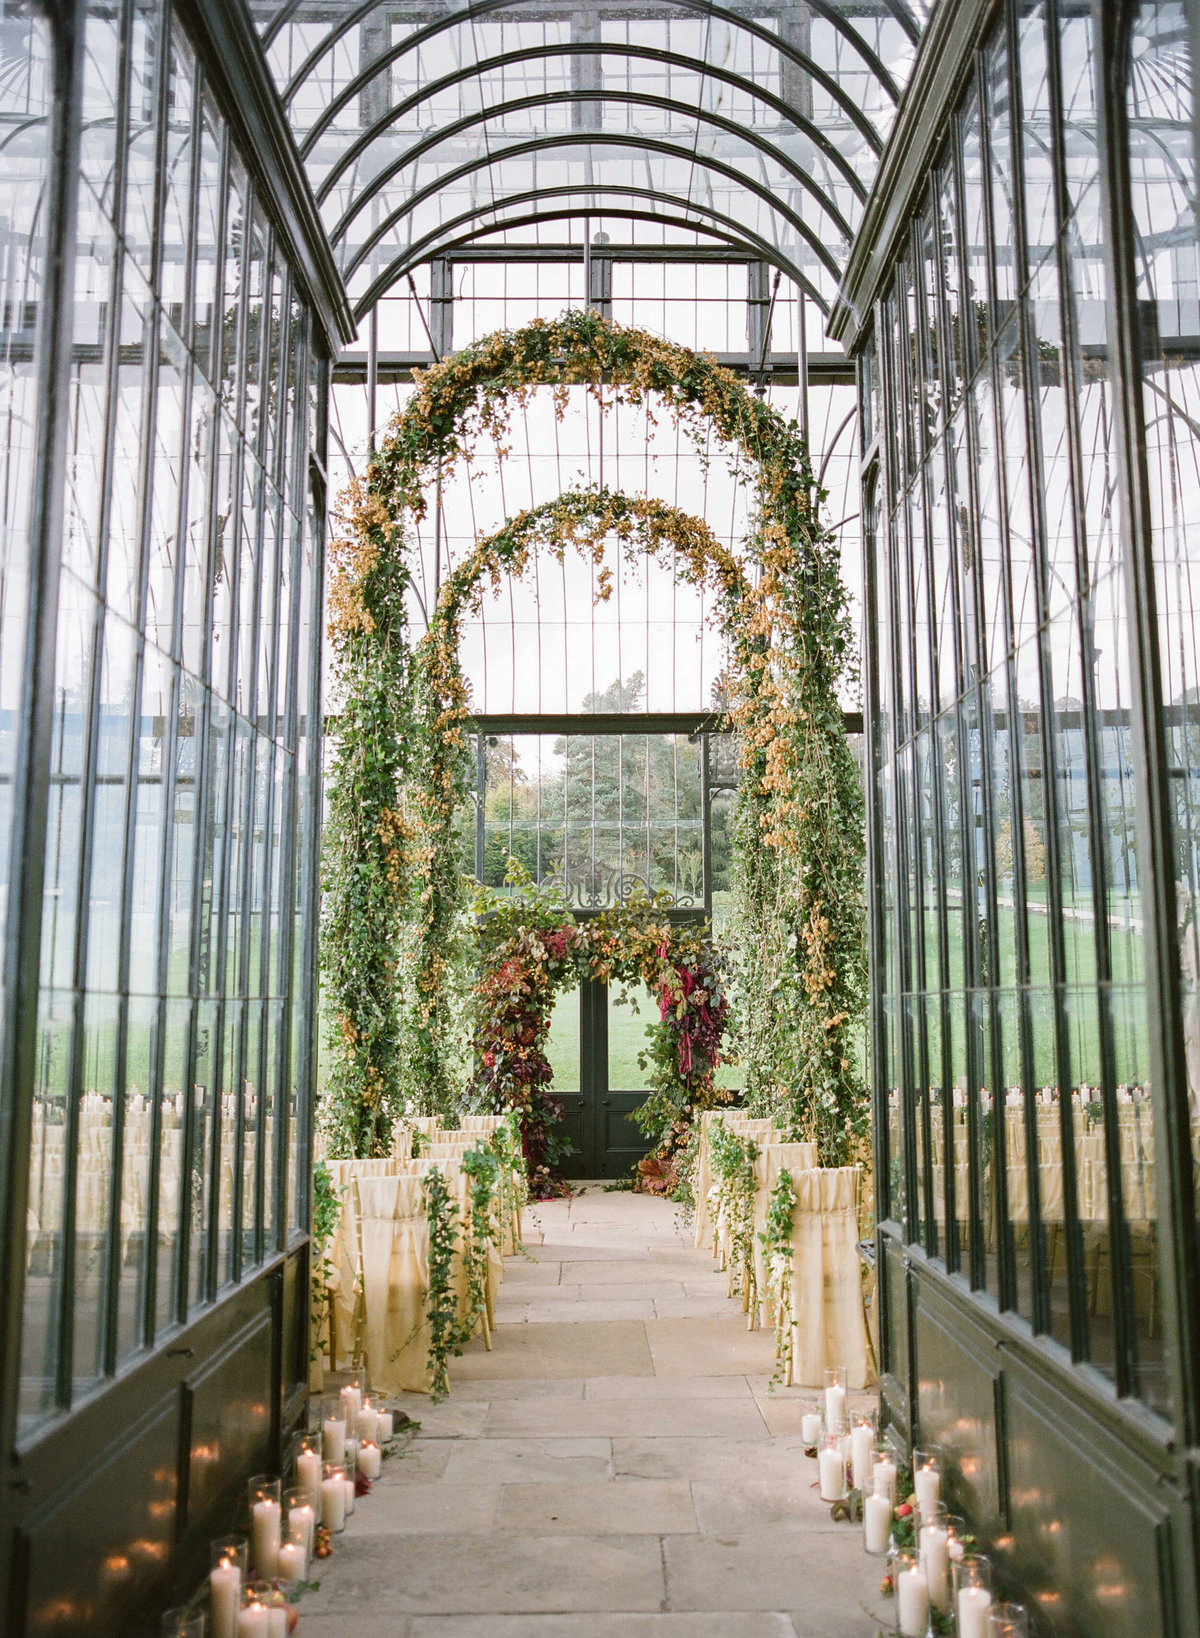 52-KTMerry-destination-weddings-Ballyfin-greenhouse-interior-Ireland